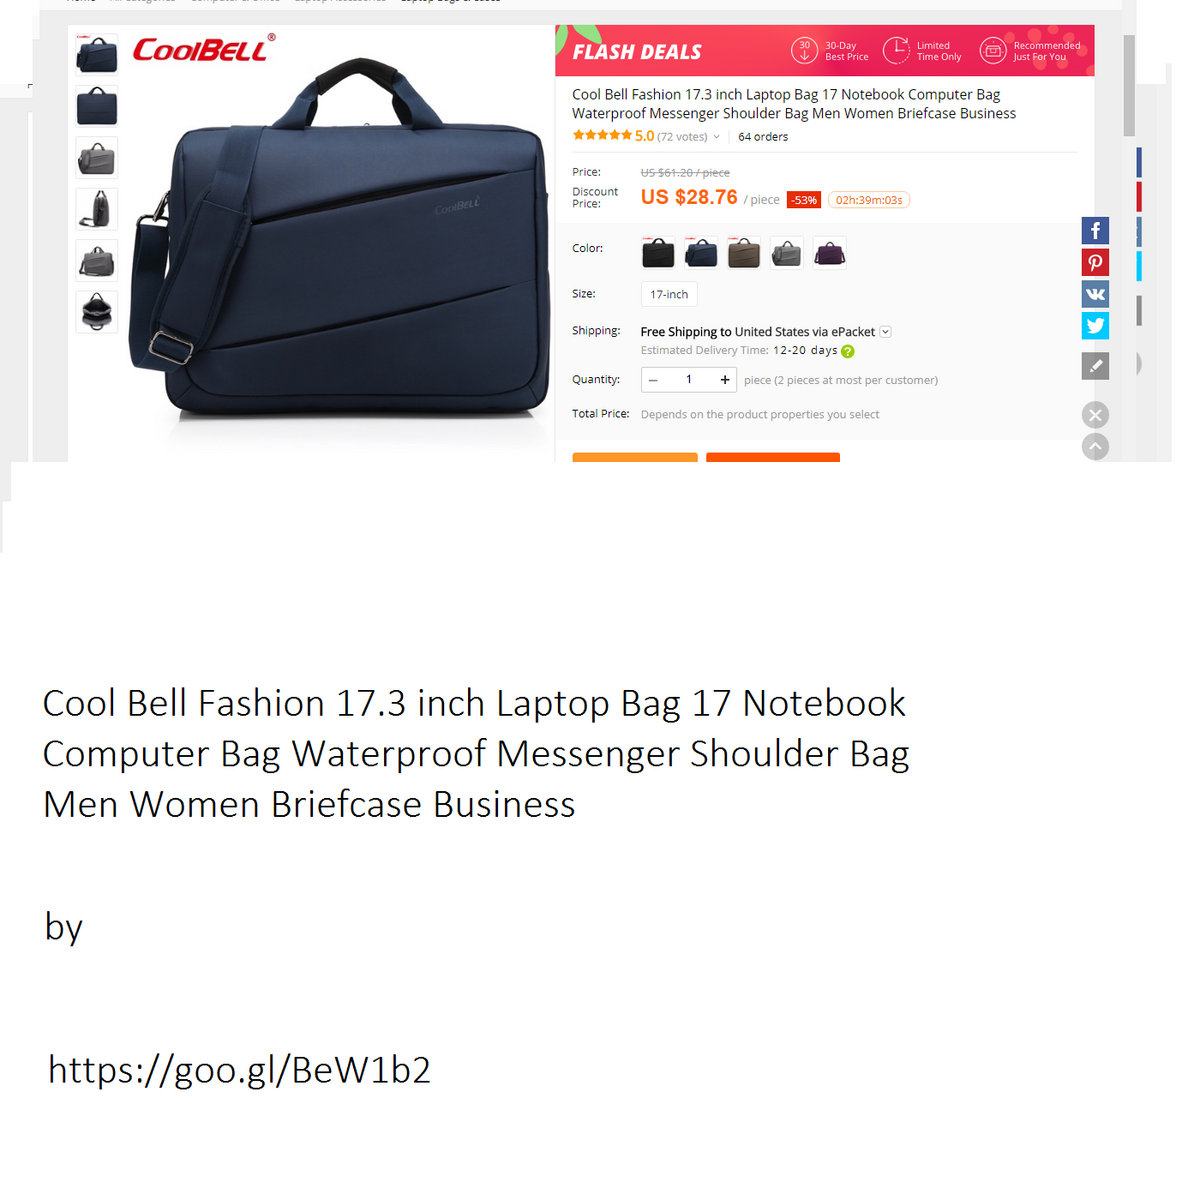 Cool Bell Fashion 17 3 Inch Laptop Bag Notebook Computer Waterproof Messenger Shoulder Men Women Briefcase Business